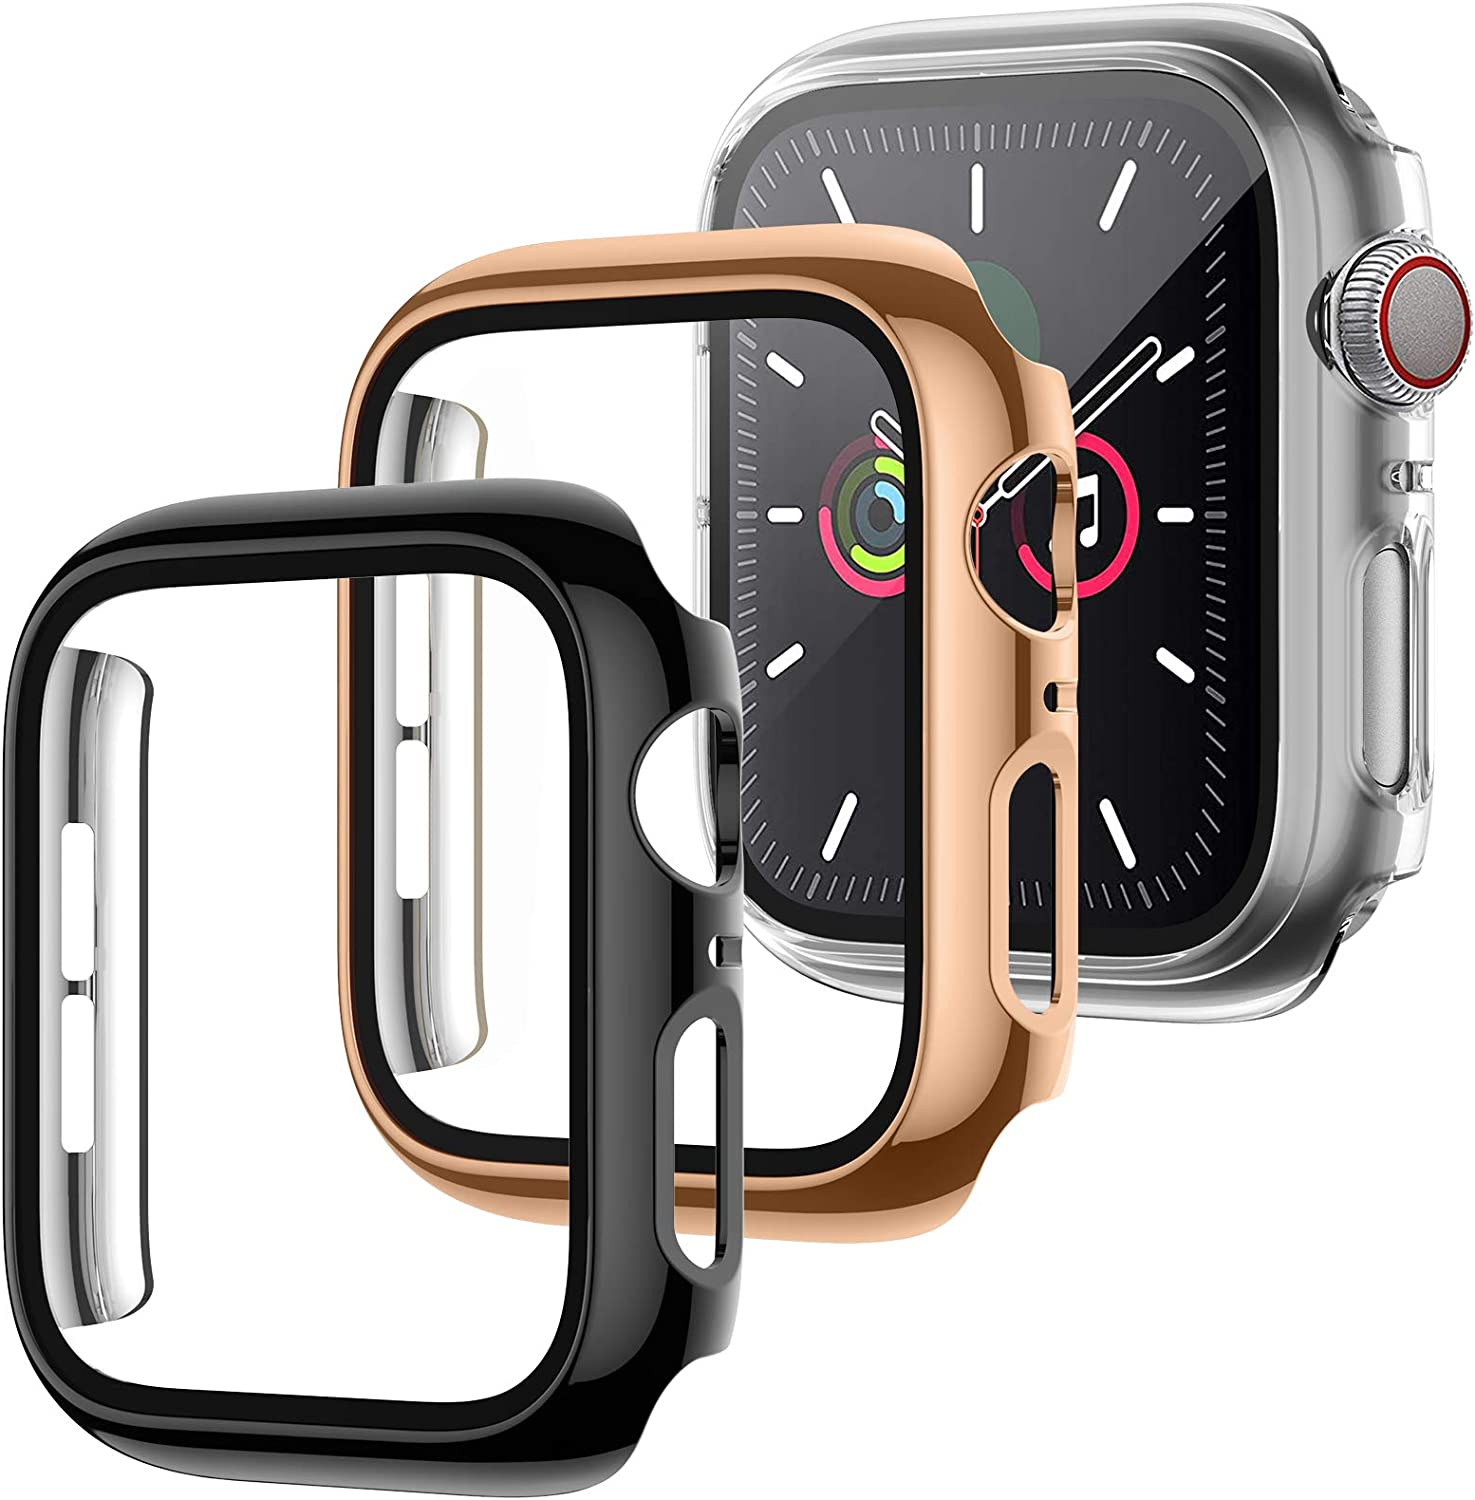 LORDSON 3 Pack Tempered Glass Screen Protector Case Compatible with Apple Watch SE/Series 6/5/4 44mm, Plated PC Protective Case Cover Bumper Compatible with iWatch Series SE/6/5/4